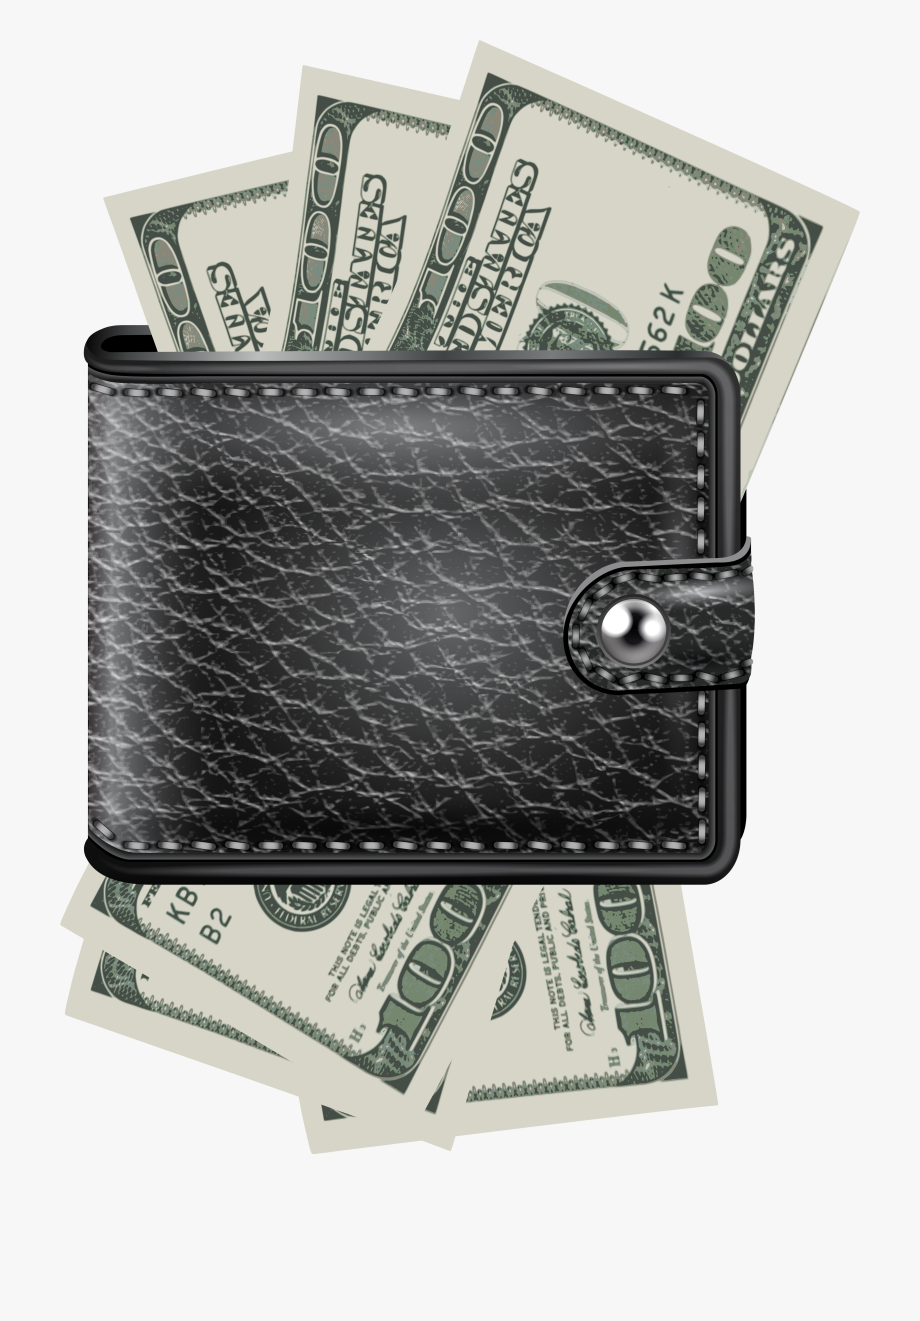 Bill png with money. Wallet clipart dollar